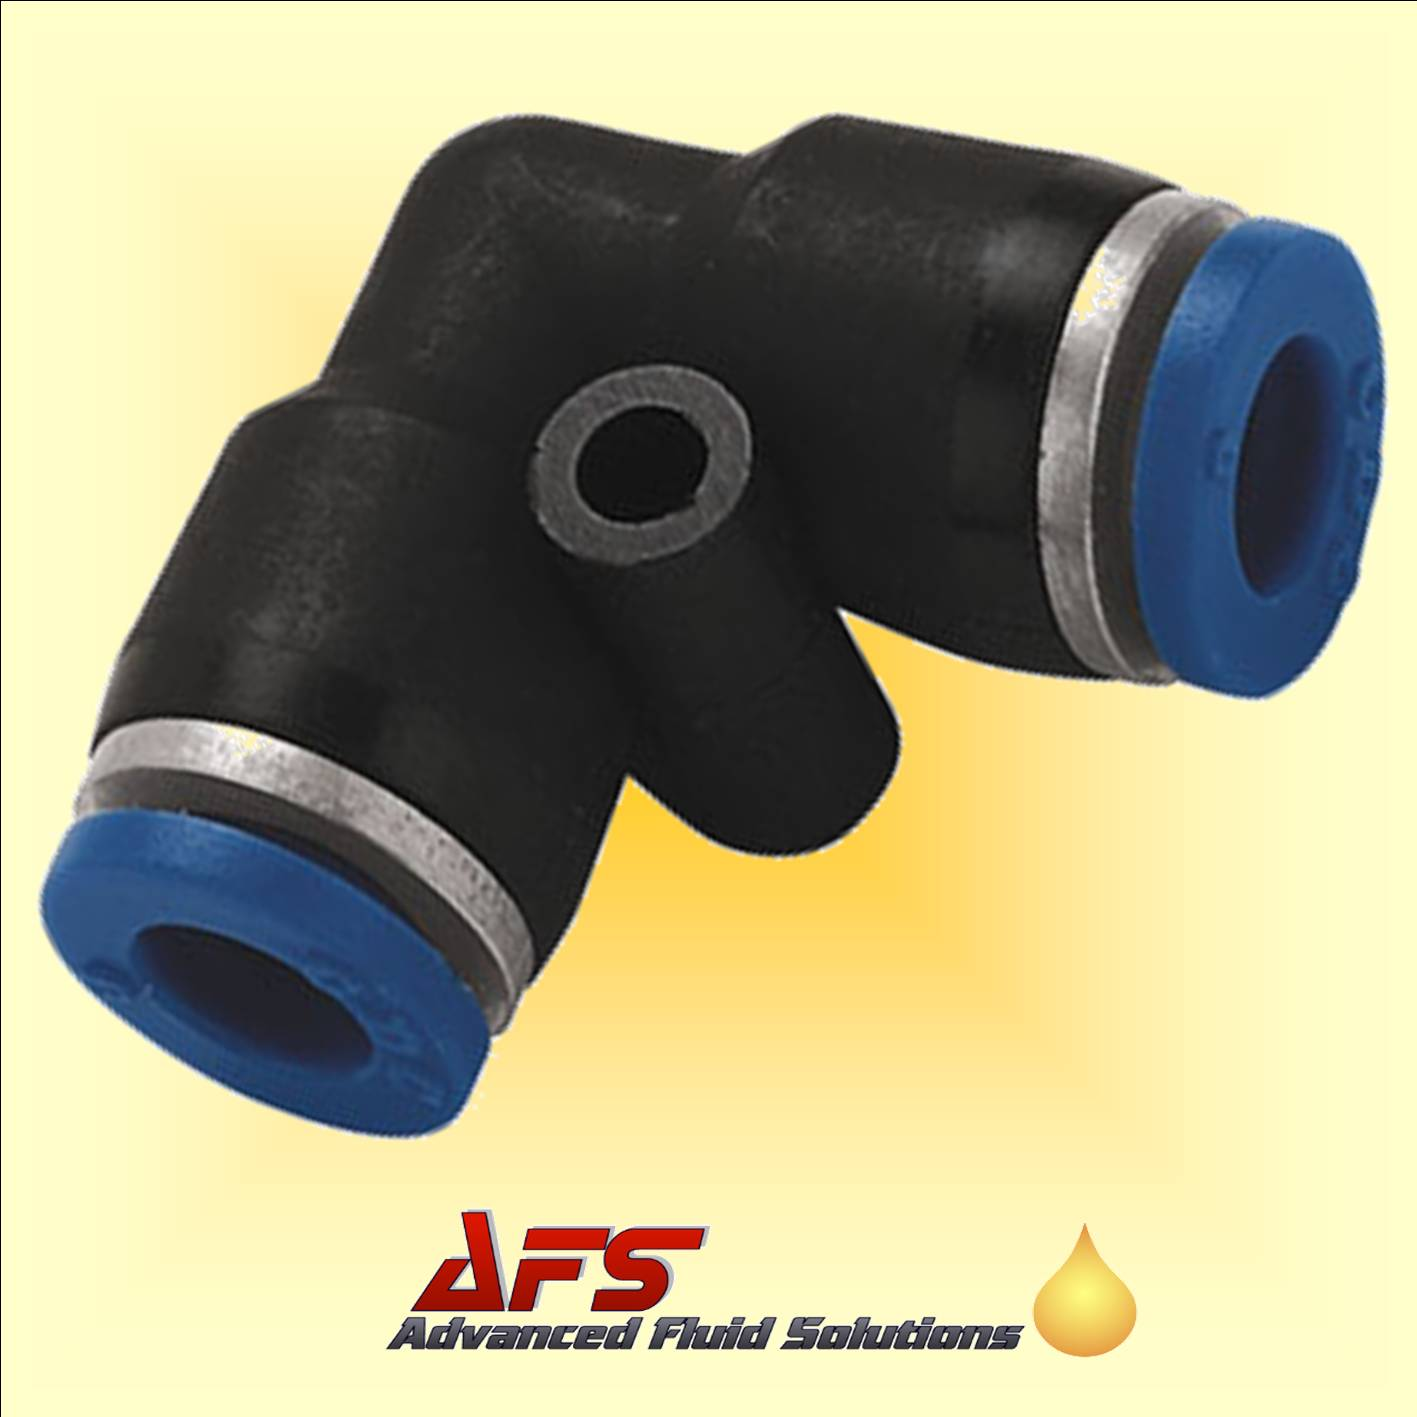 6mm Equal Elbow 90 Push-in Fitting Nylon Pipe/Tube Connector. « & 6mm Equal Elbow 90 Push-in Fitting Nylon Pipe Tube Connector